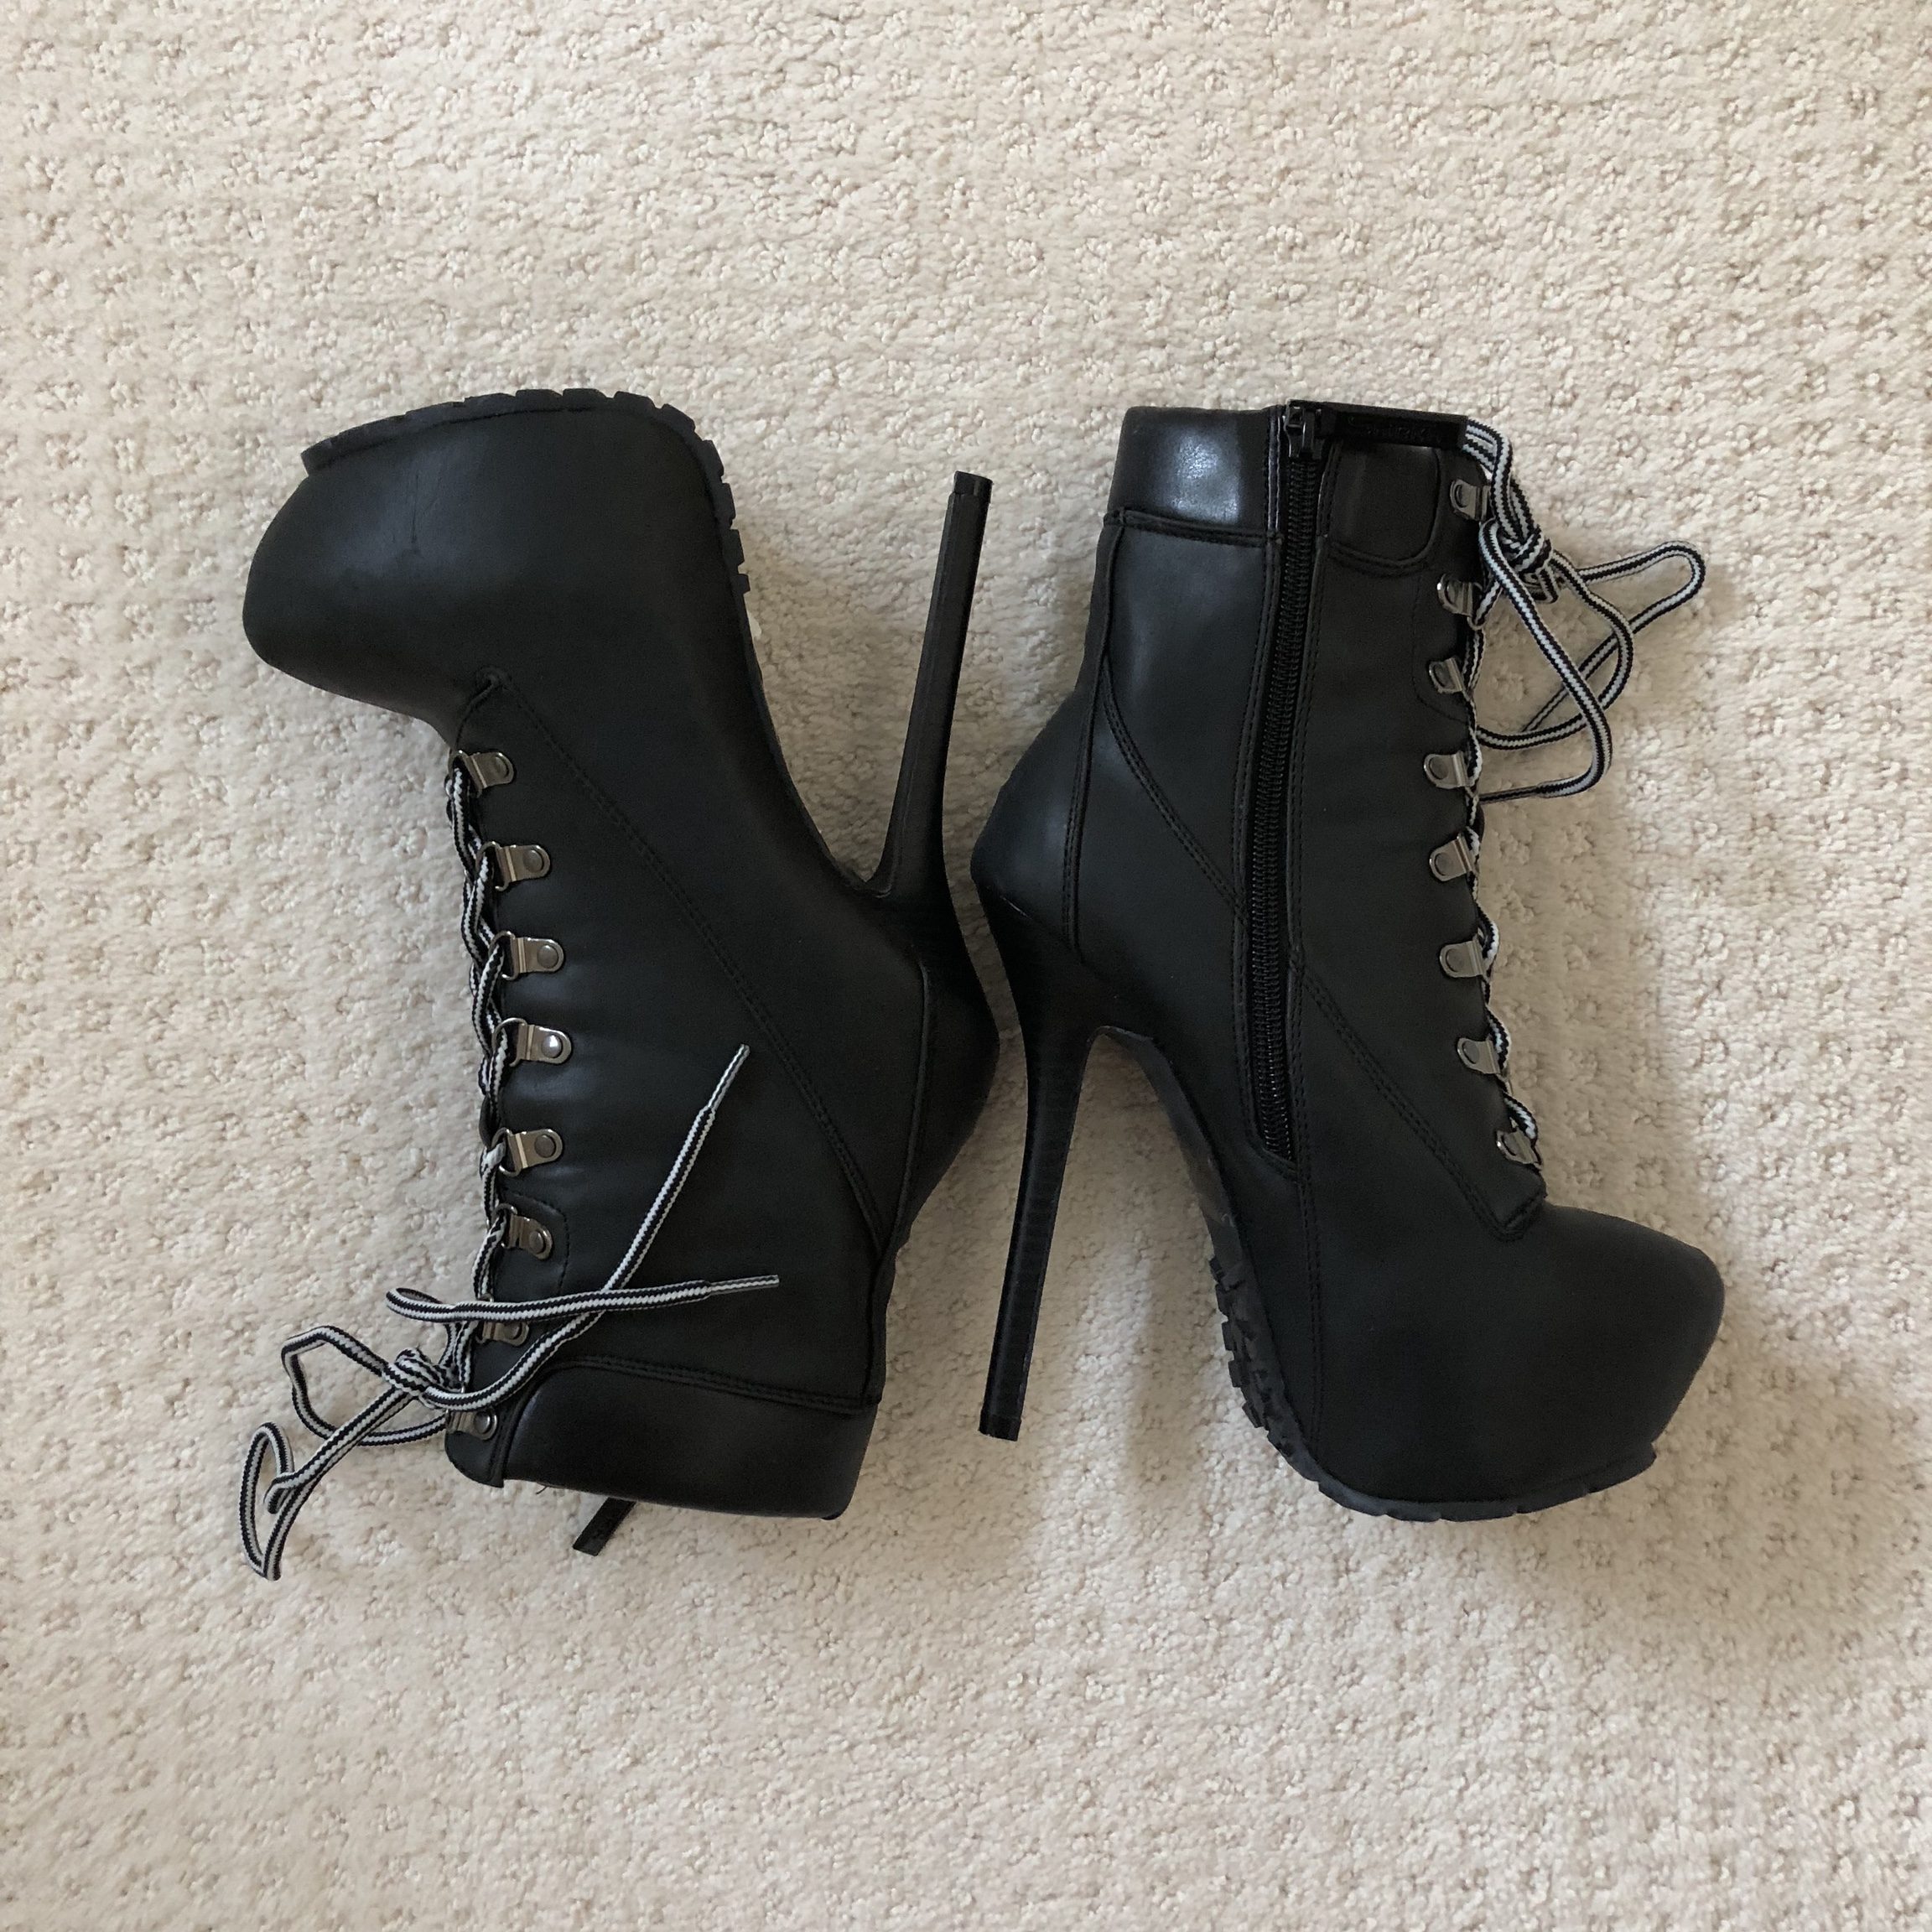 Some black faux leather combat boot heels! Anyone Depop